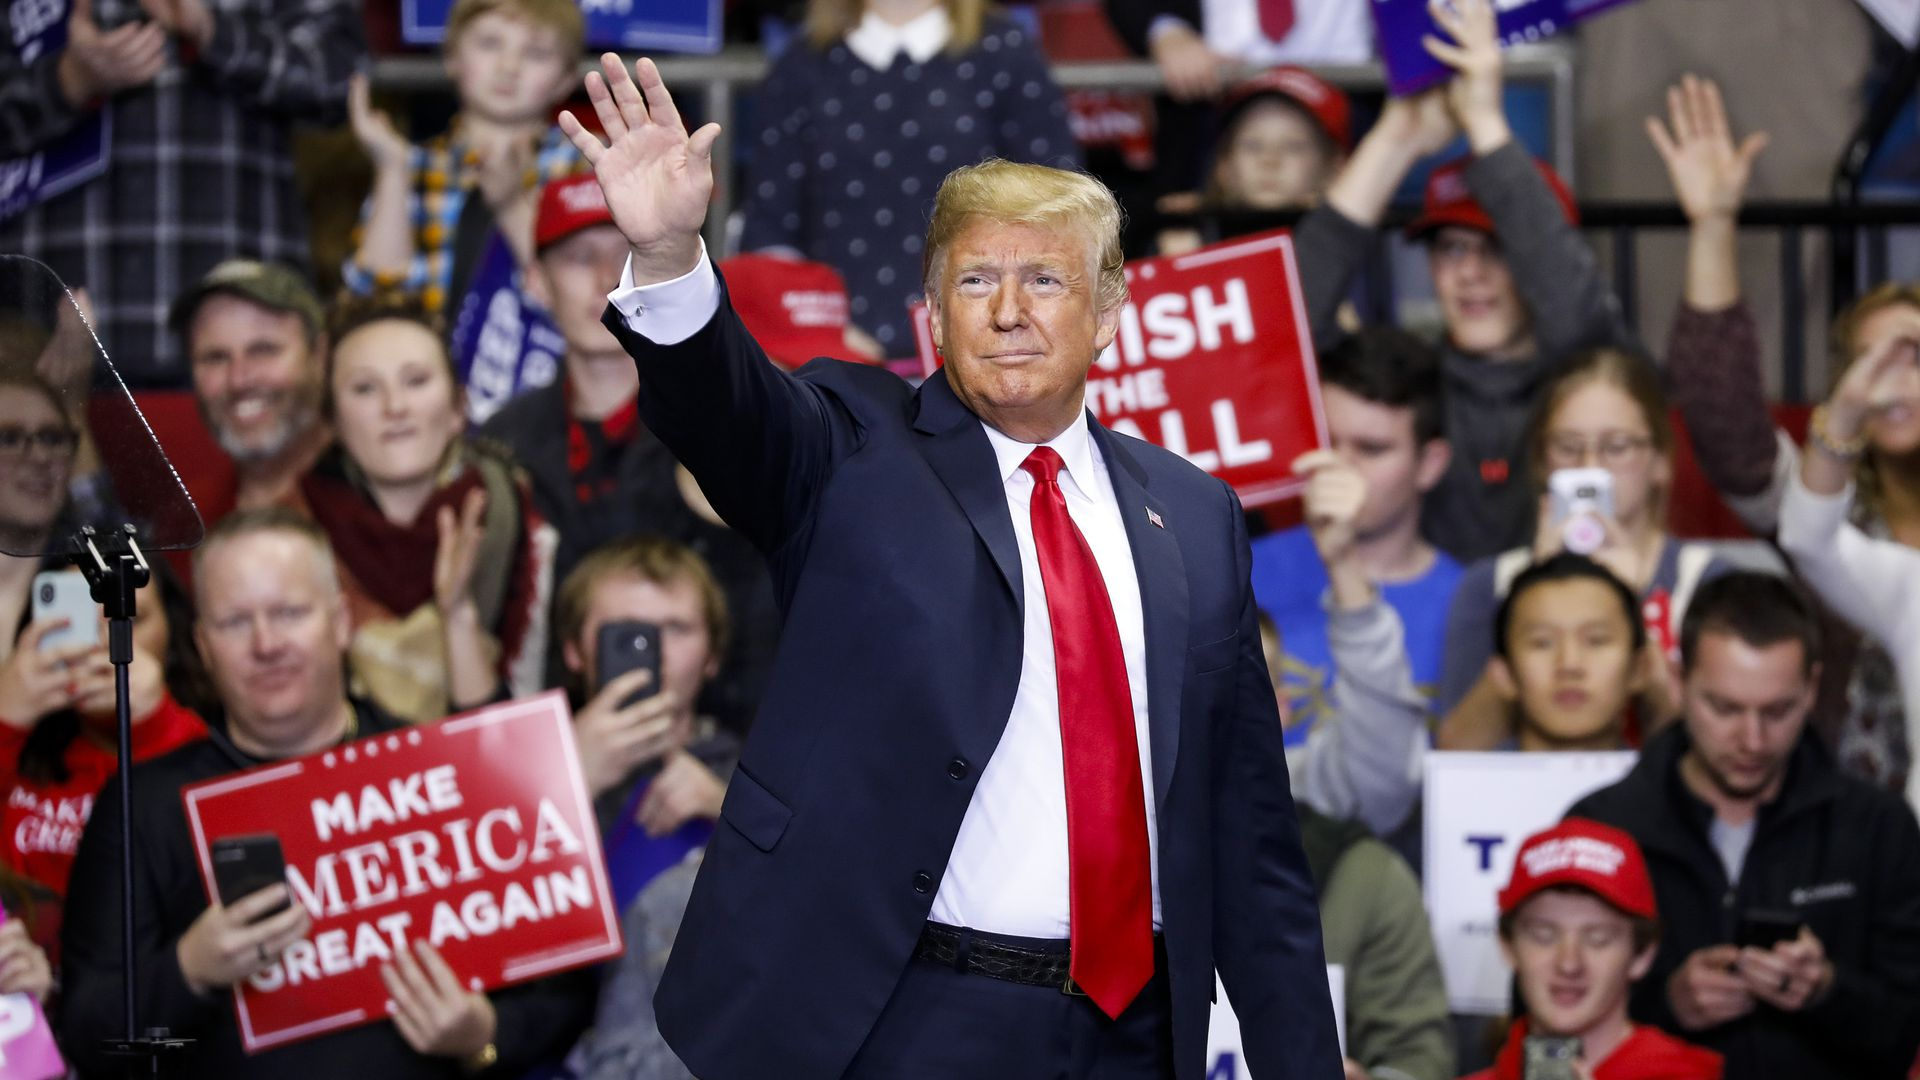 President Donald Trump waves while walking onto the stage at a MAGA rally